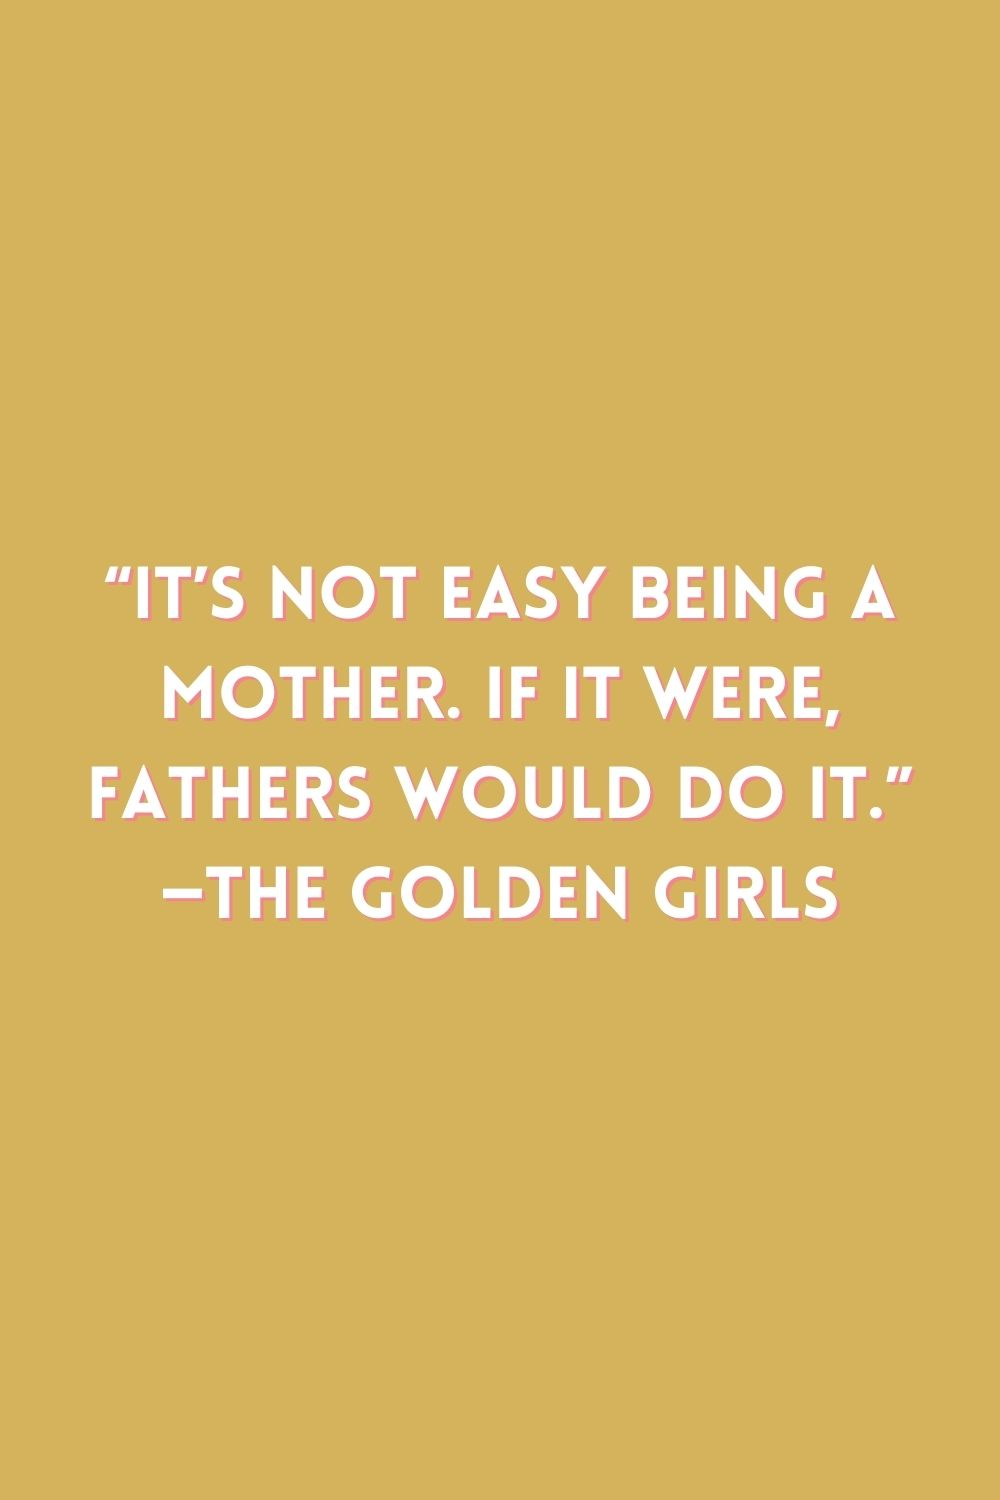 Mother's Day Quotes Golden Girls